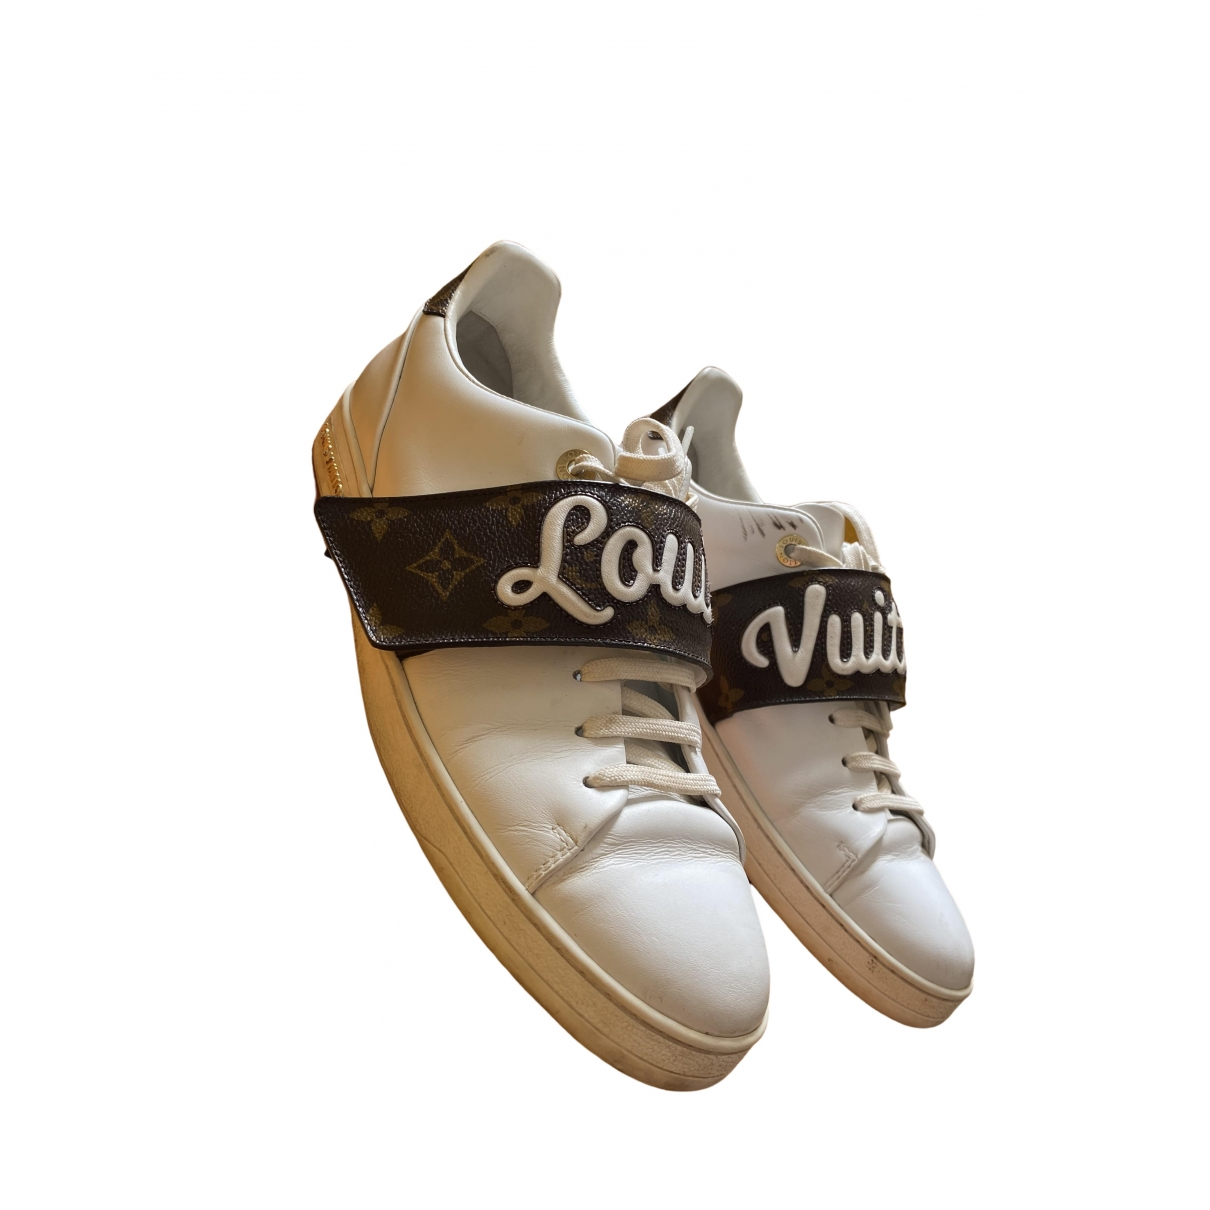 Louis Vuitton FrontRow White Leather Trainers for Women 40.5 EU